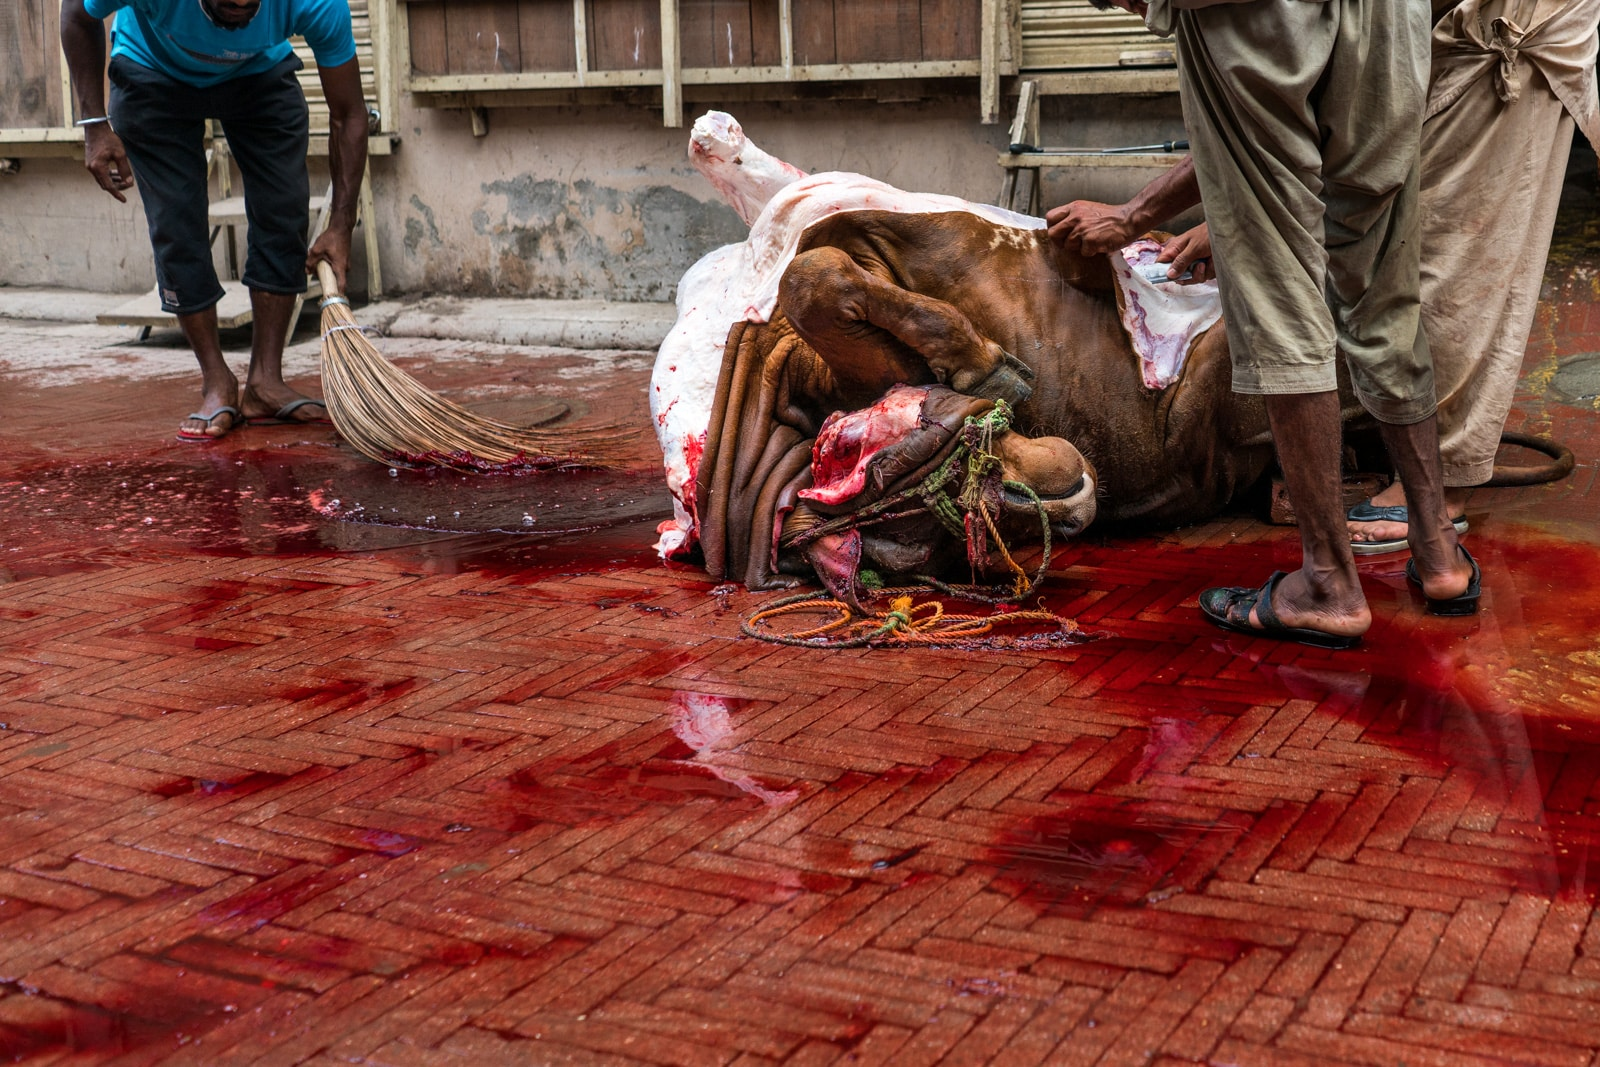 Celebrating Eid al-Adha in Lahore, Pakistan - Dead cow in a blood puddle